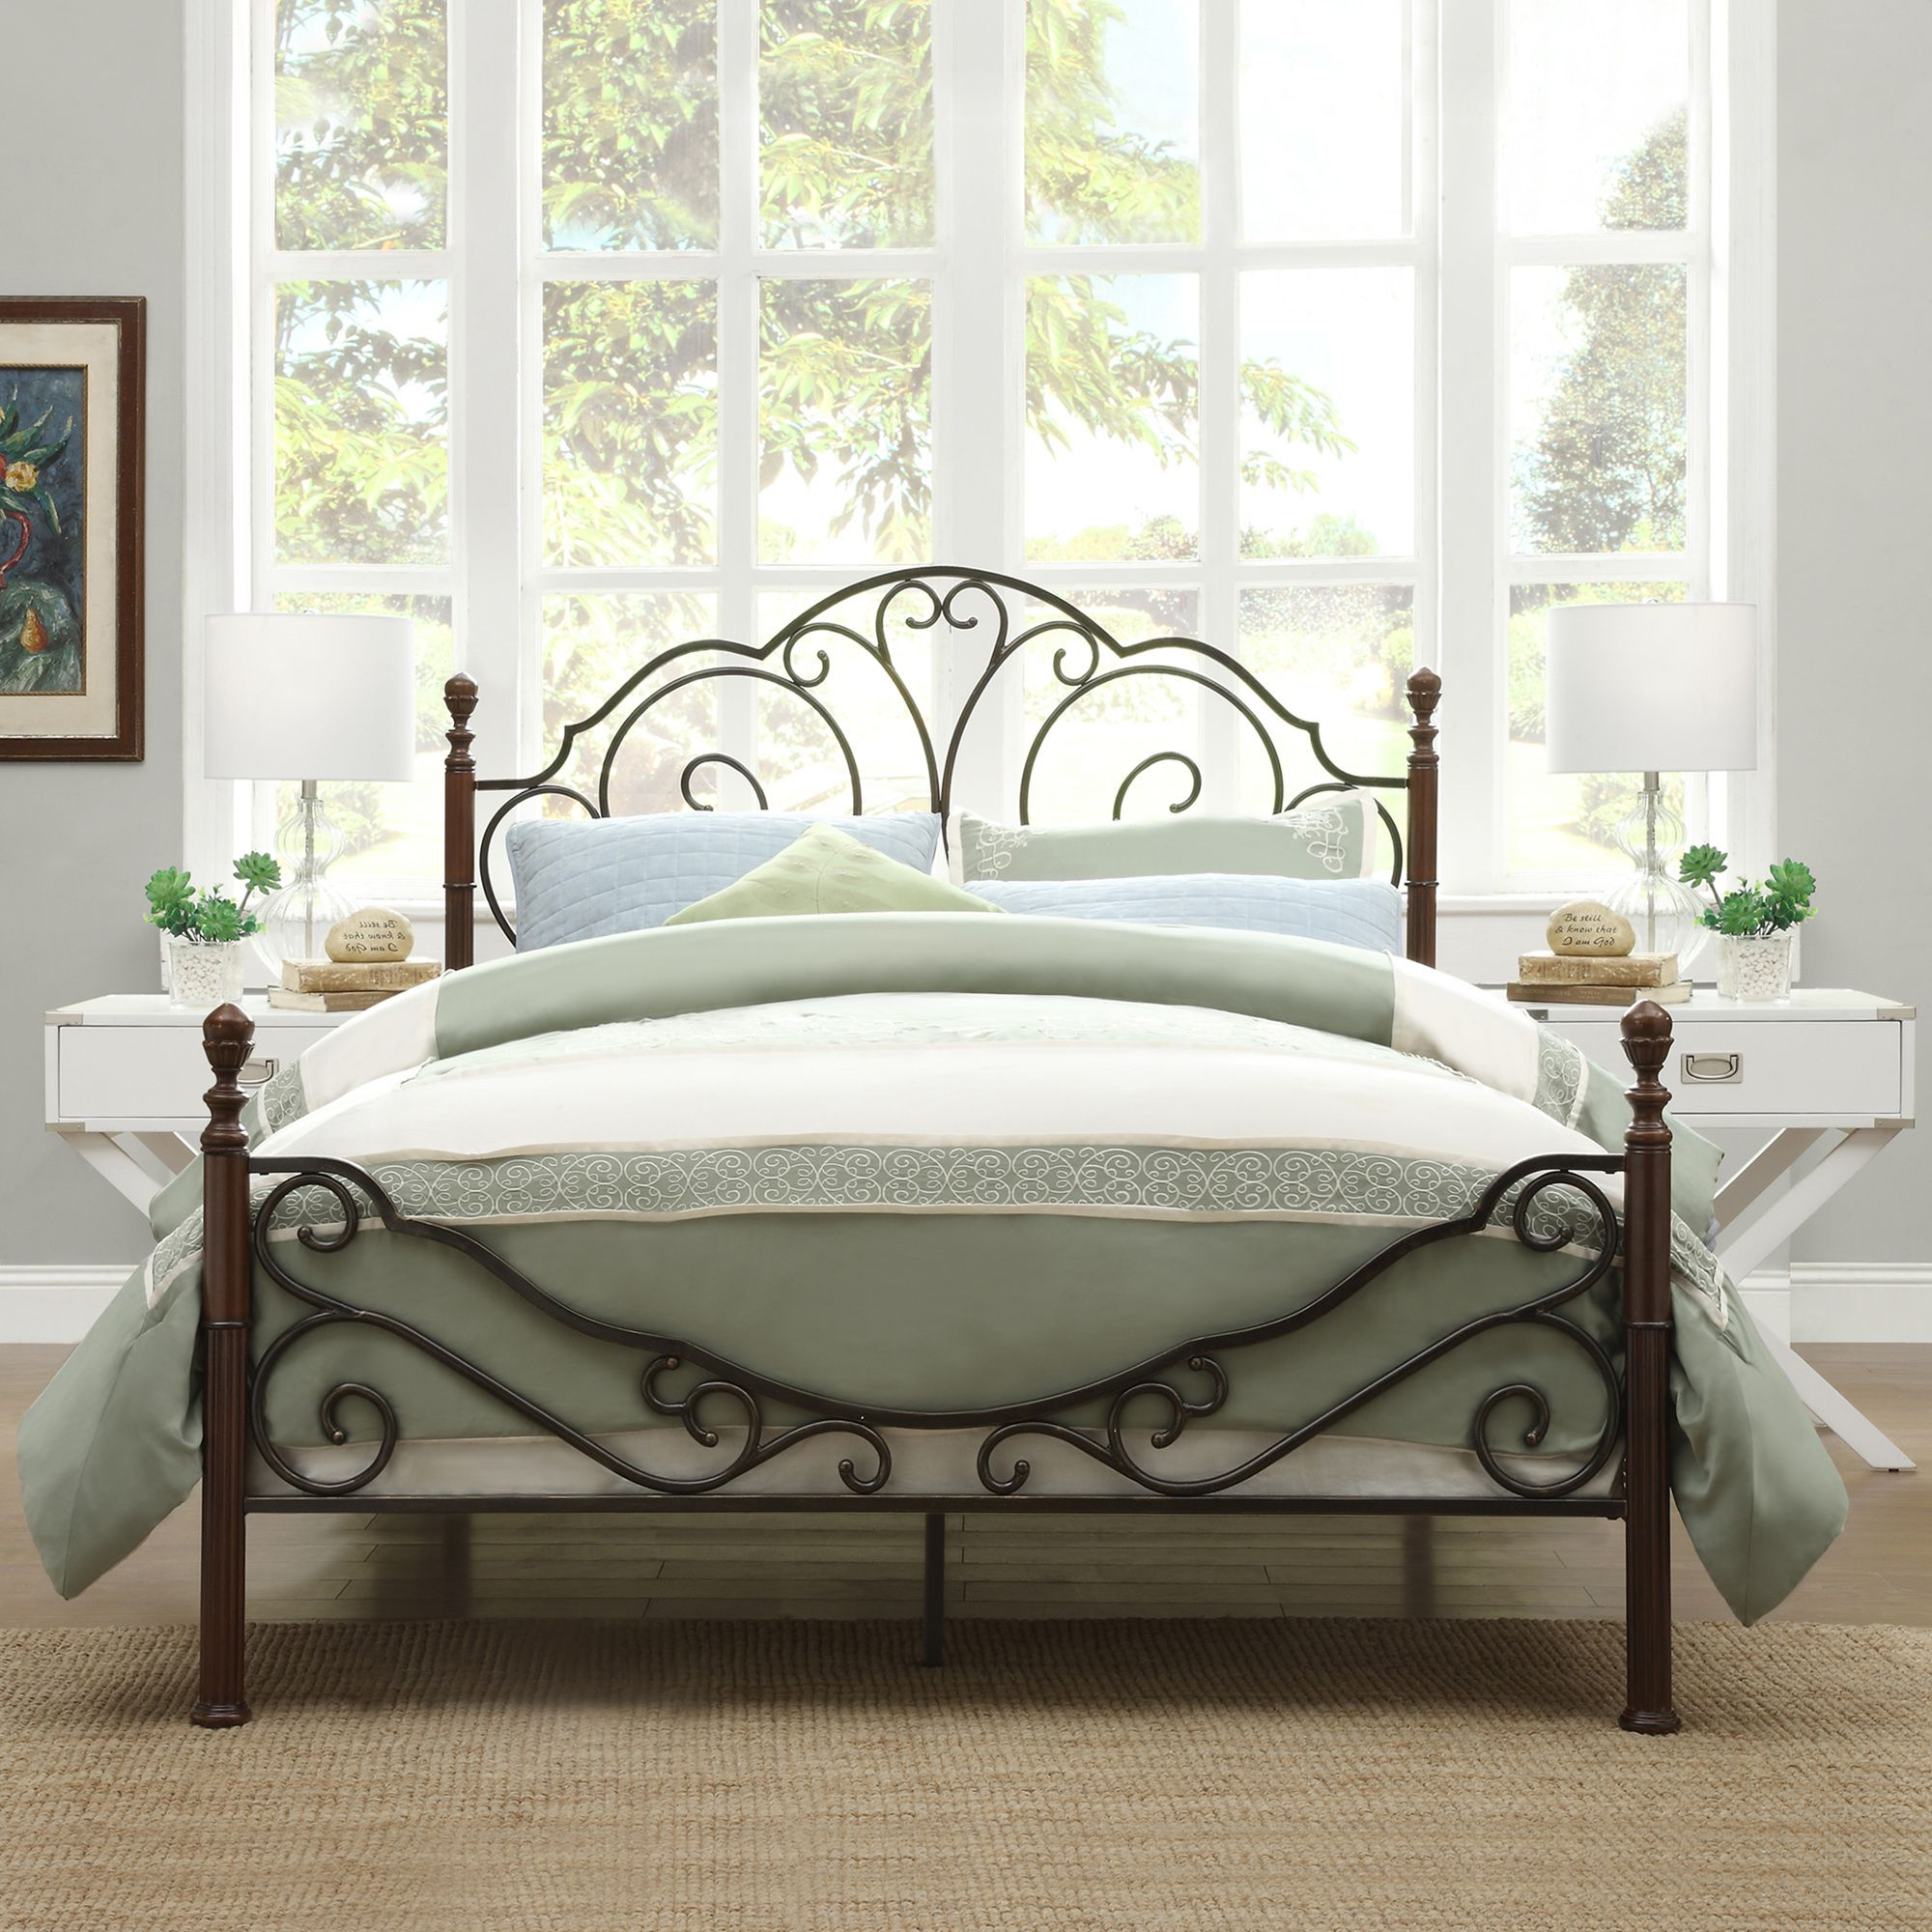 Home Iron Bed Frame Queen Size Bed Frames Wrought Iron Bed Frames